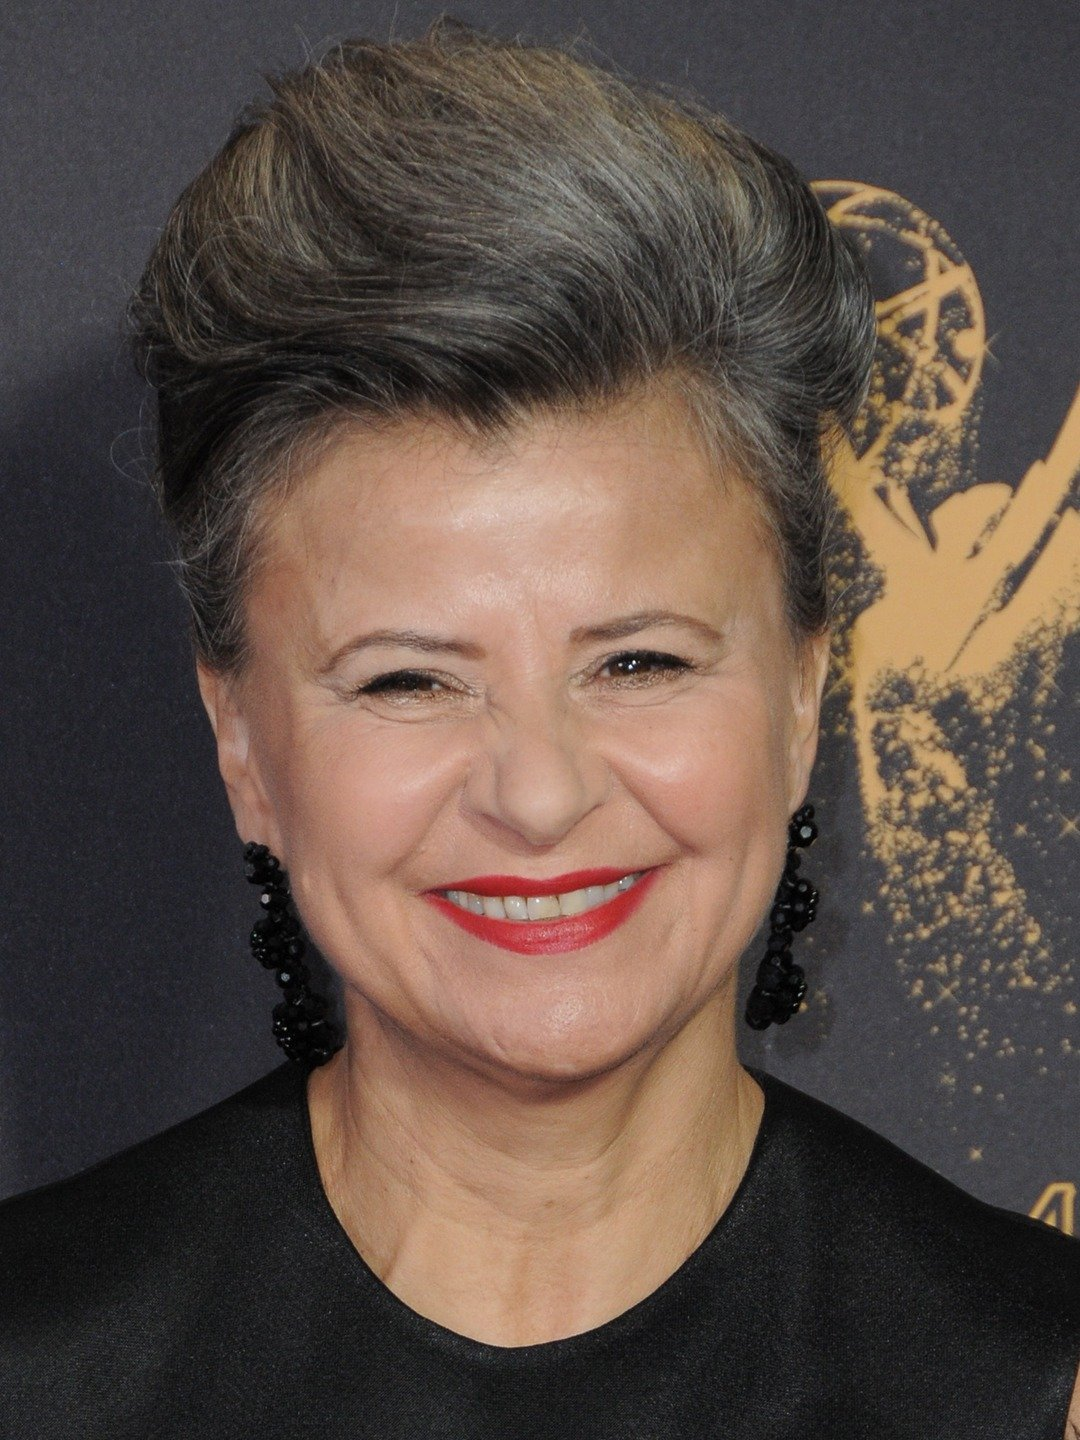 Tracey Ullman British Actress, Comedian, Singer, Dancer, Screenwriter, Producer, Director, Author